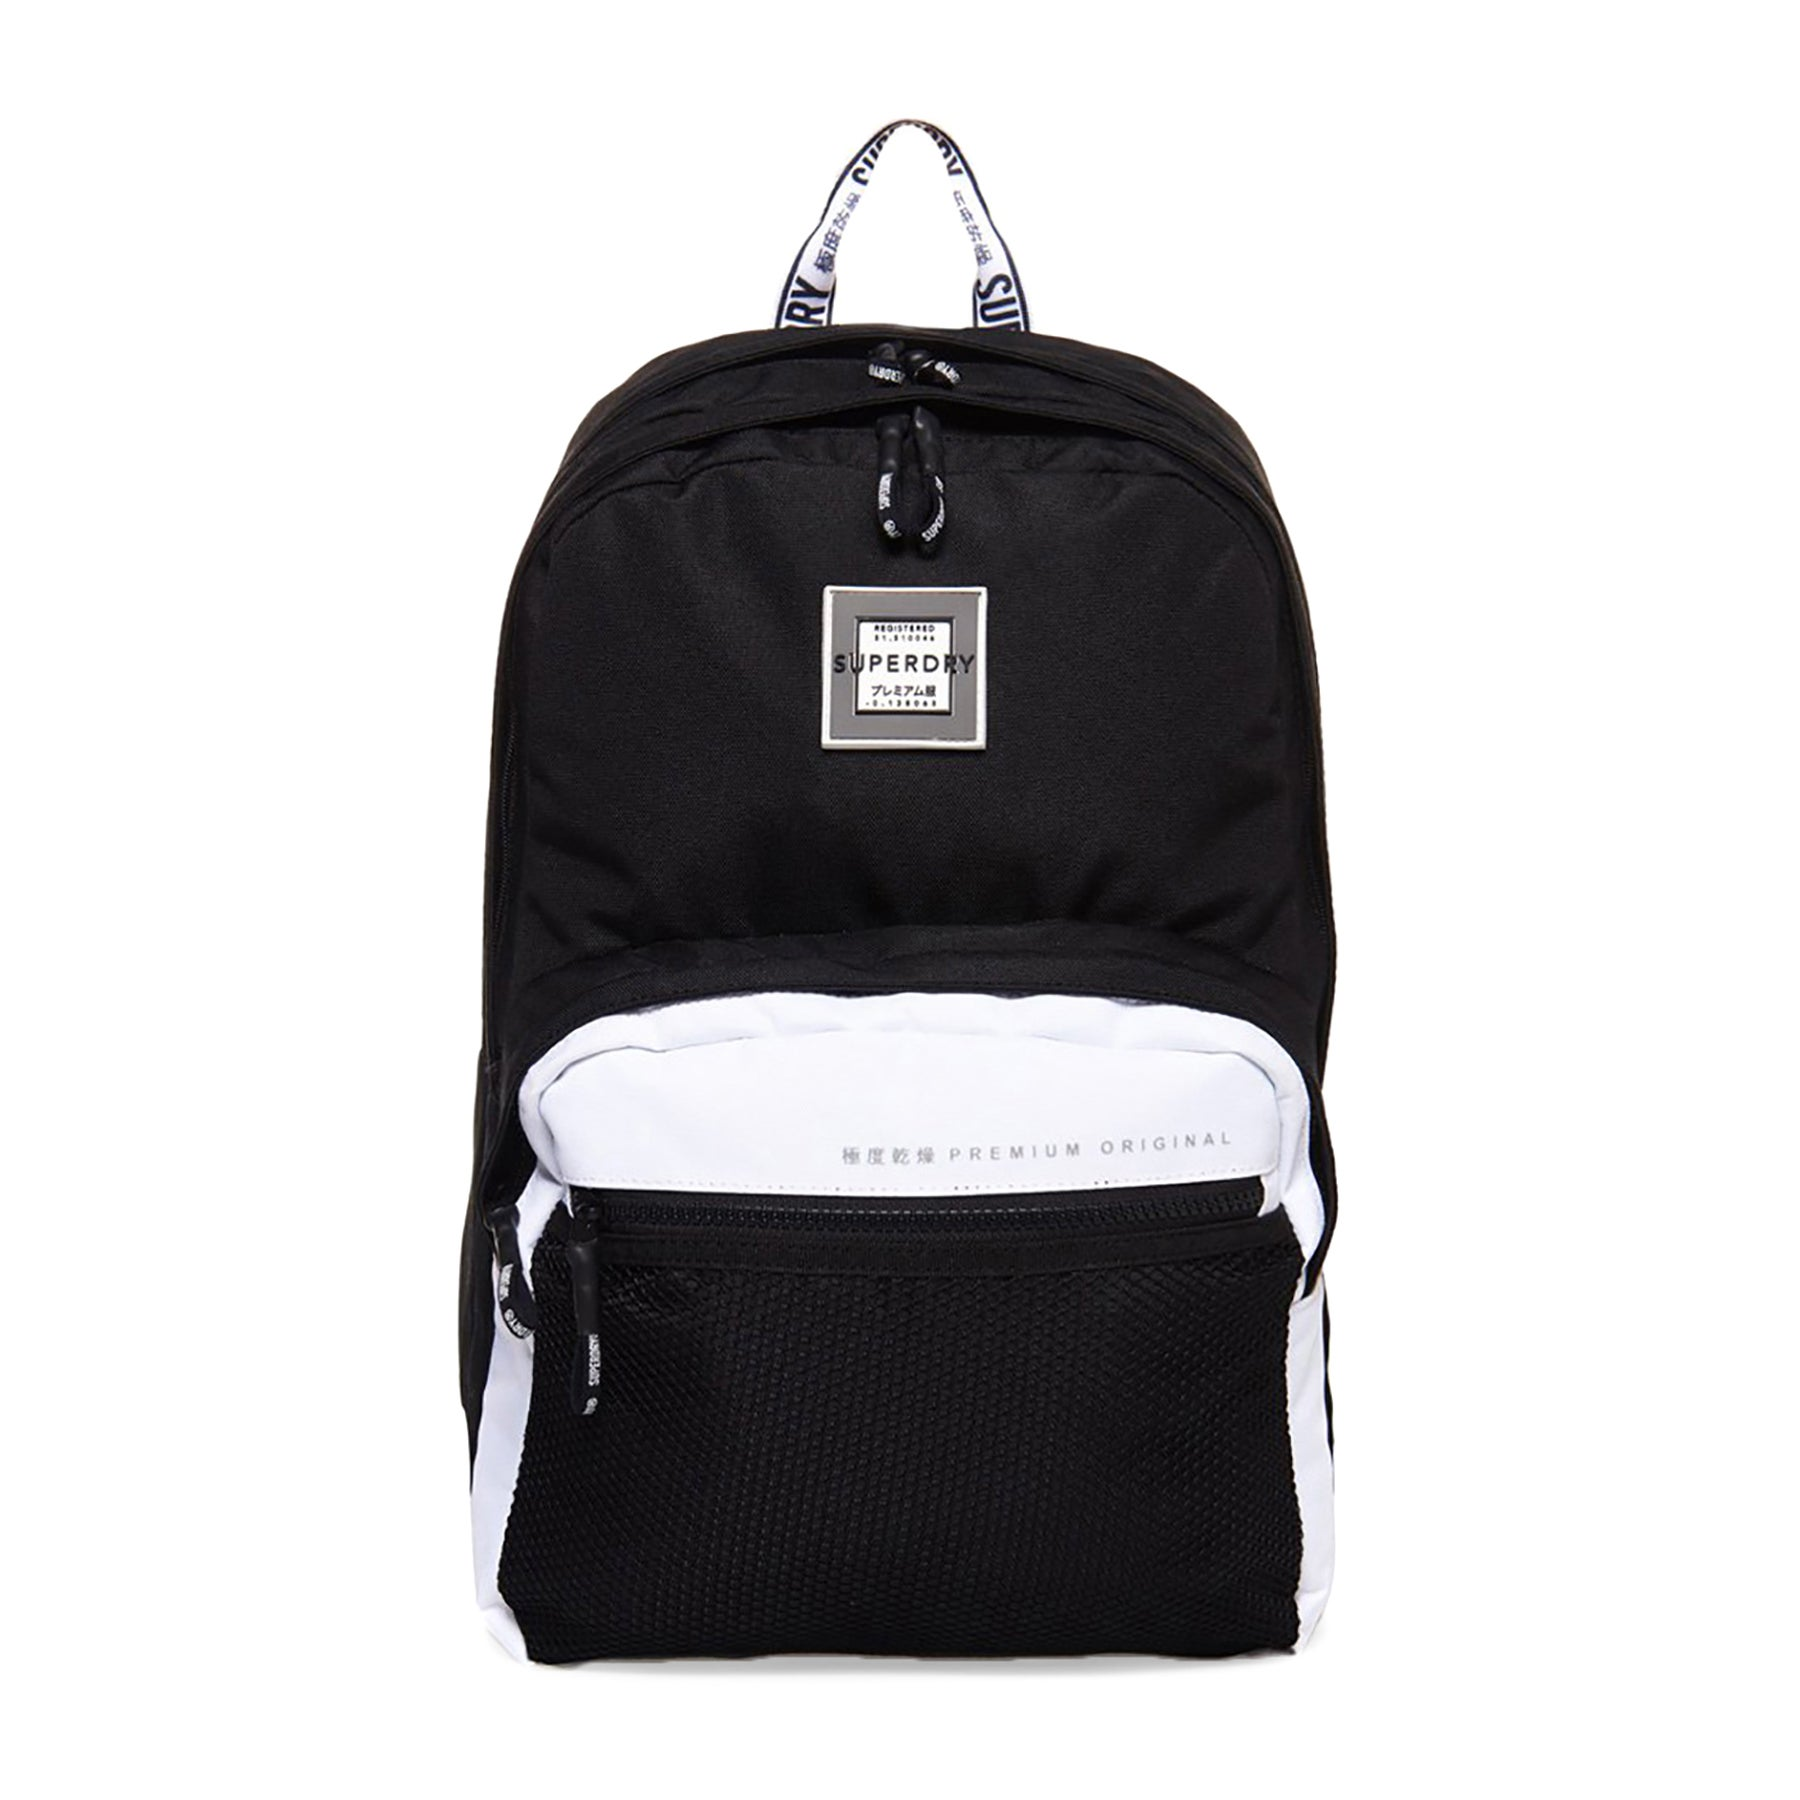 Superdry Hayden Backpack